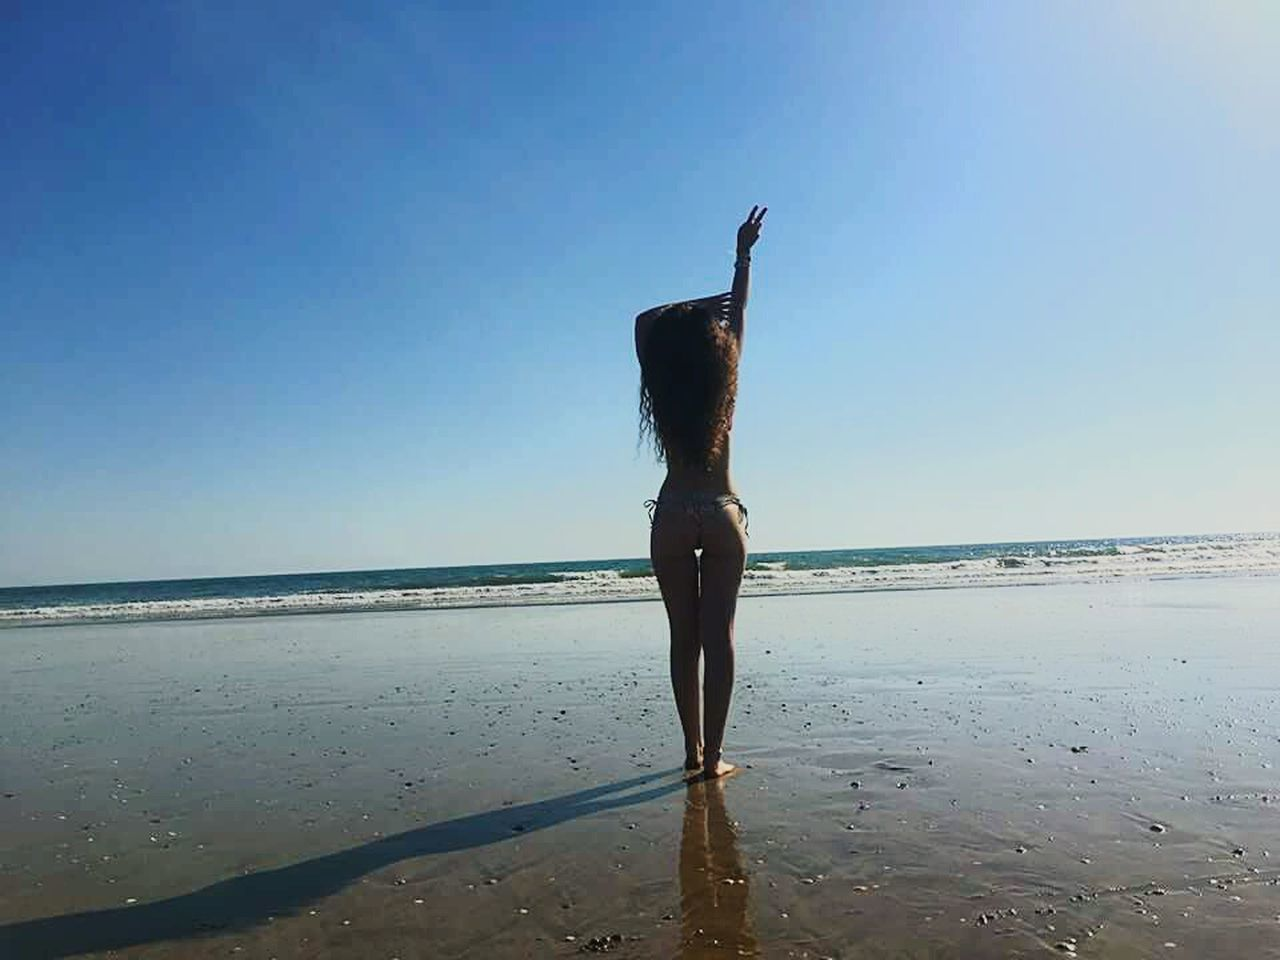 sea, beach, horizon over water, real people, shore, water, clear sky, sky, scenics, beauty in nature, nature, leisure activity, rear view, sand, one person, lifestyles, outdoors, tranquil scene, full length, standing, day, women, people